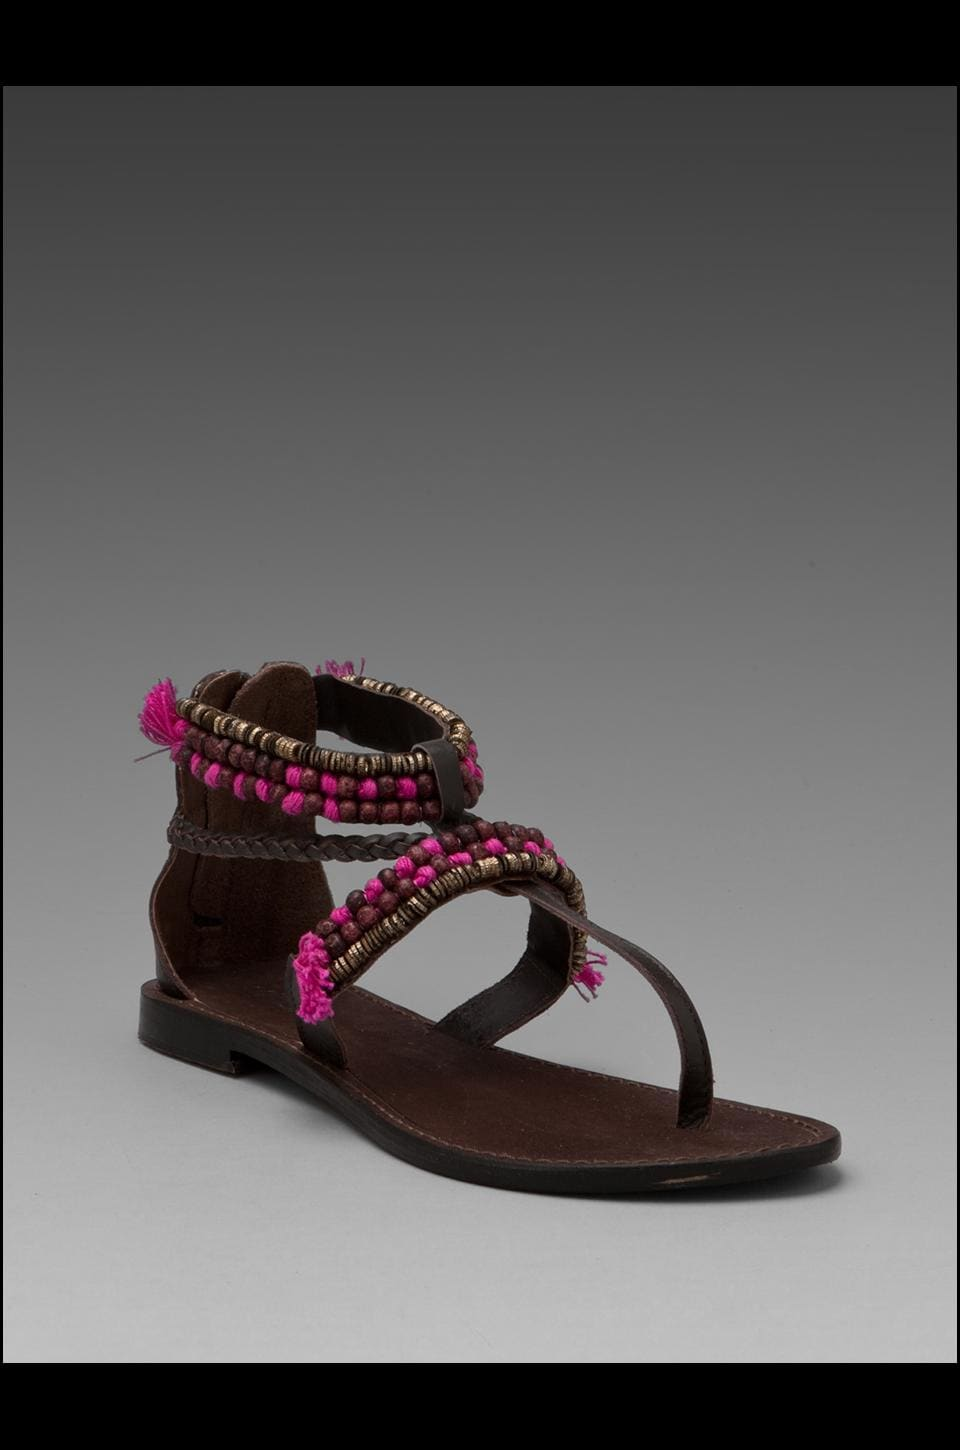 Matisse Mombasa Sandal in Chocolate